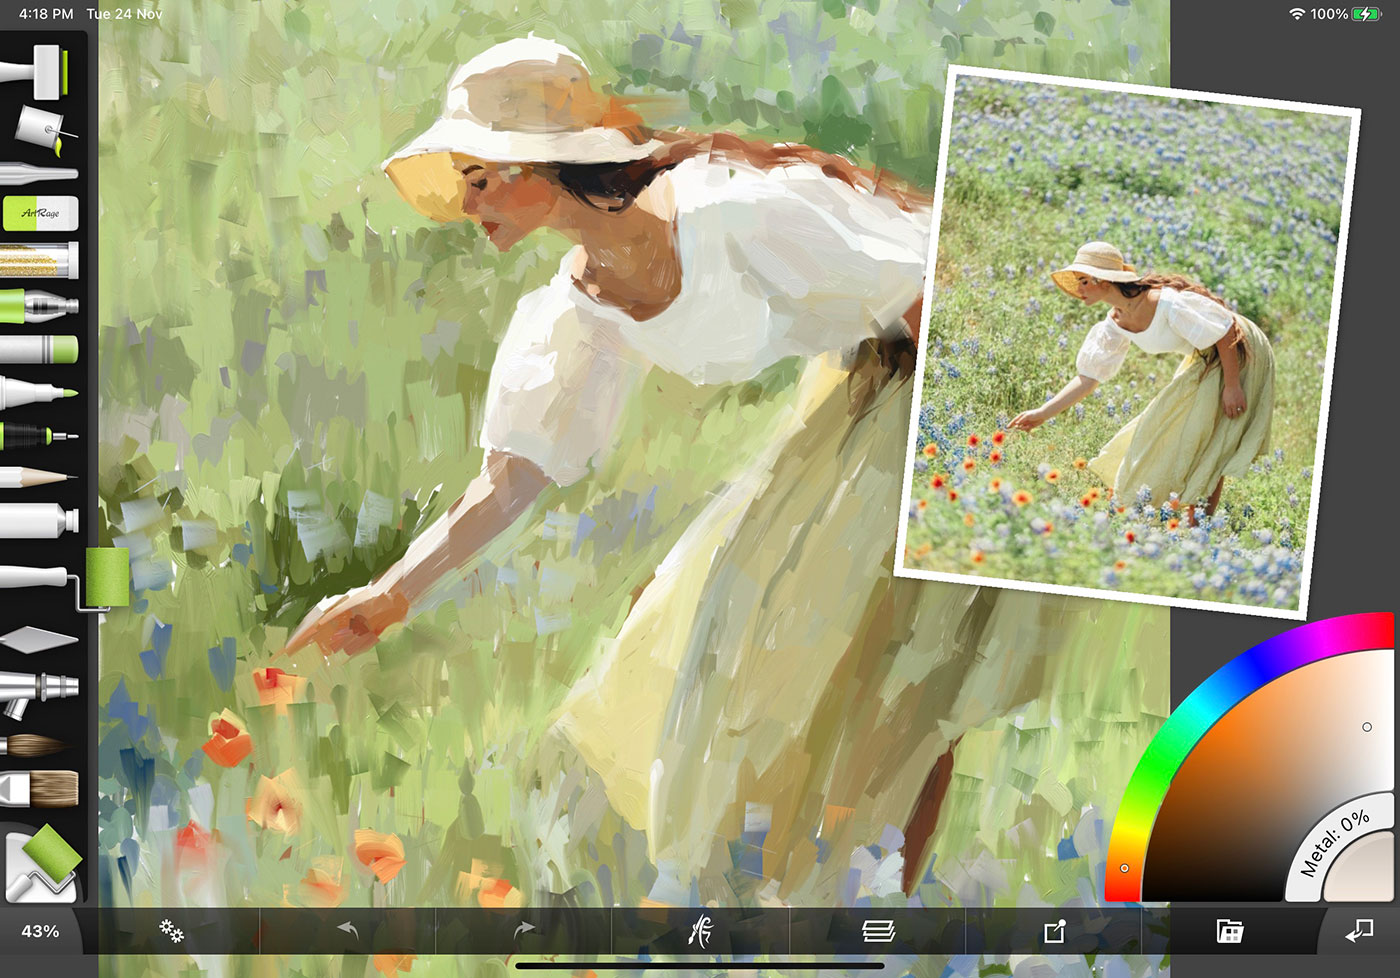 iPad app showing painting of a woman picking flowers in a field